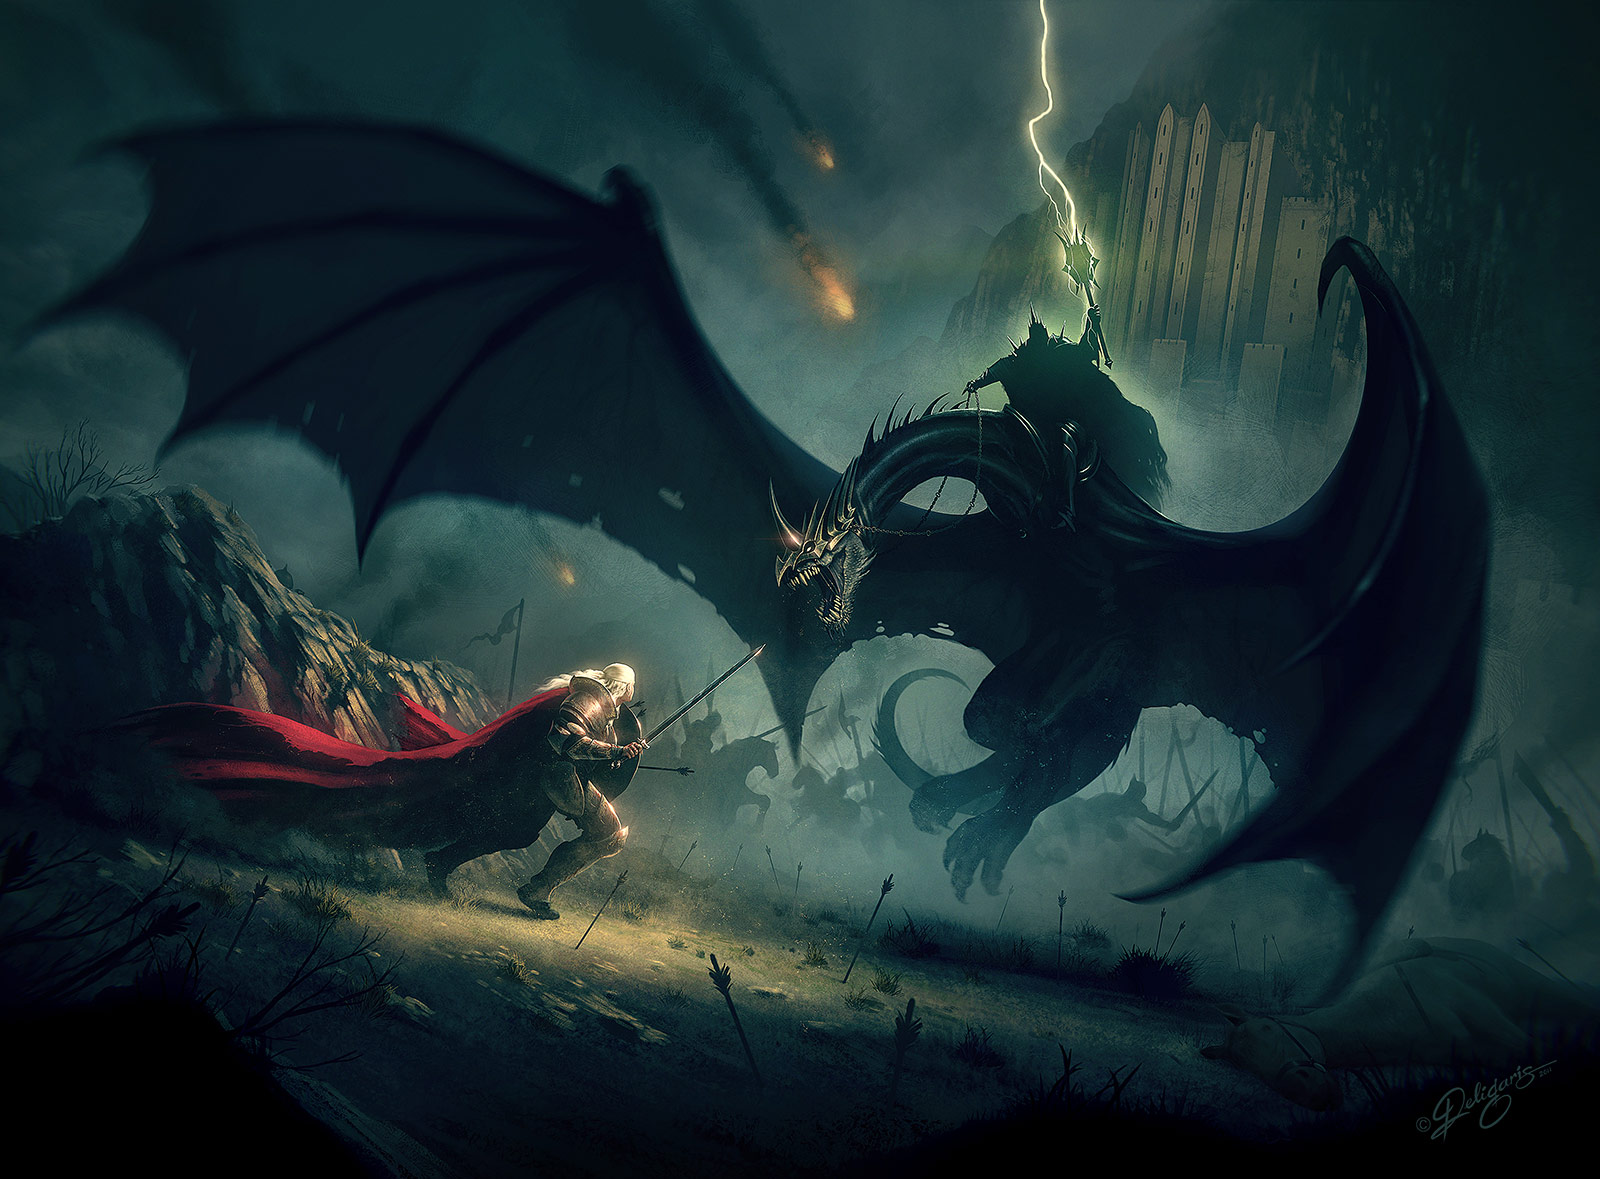 eowyn_and_the_nazgul_by_deligaris-d3hfa06.jpg